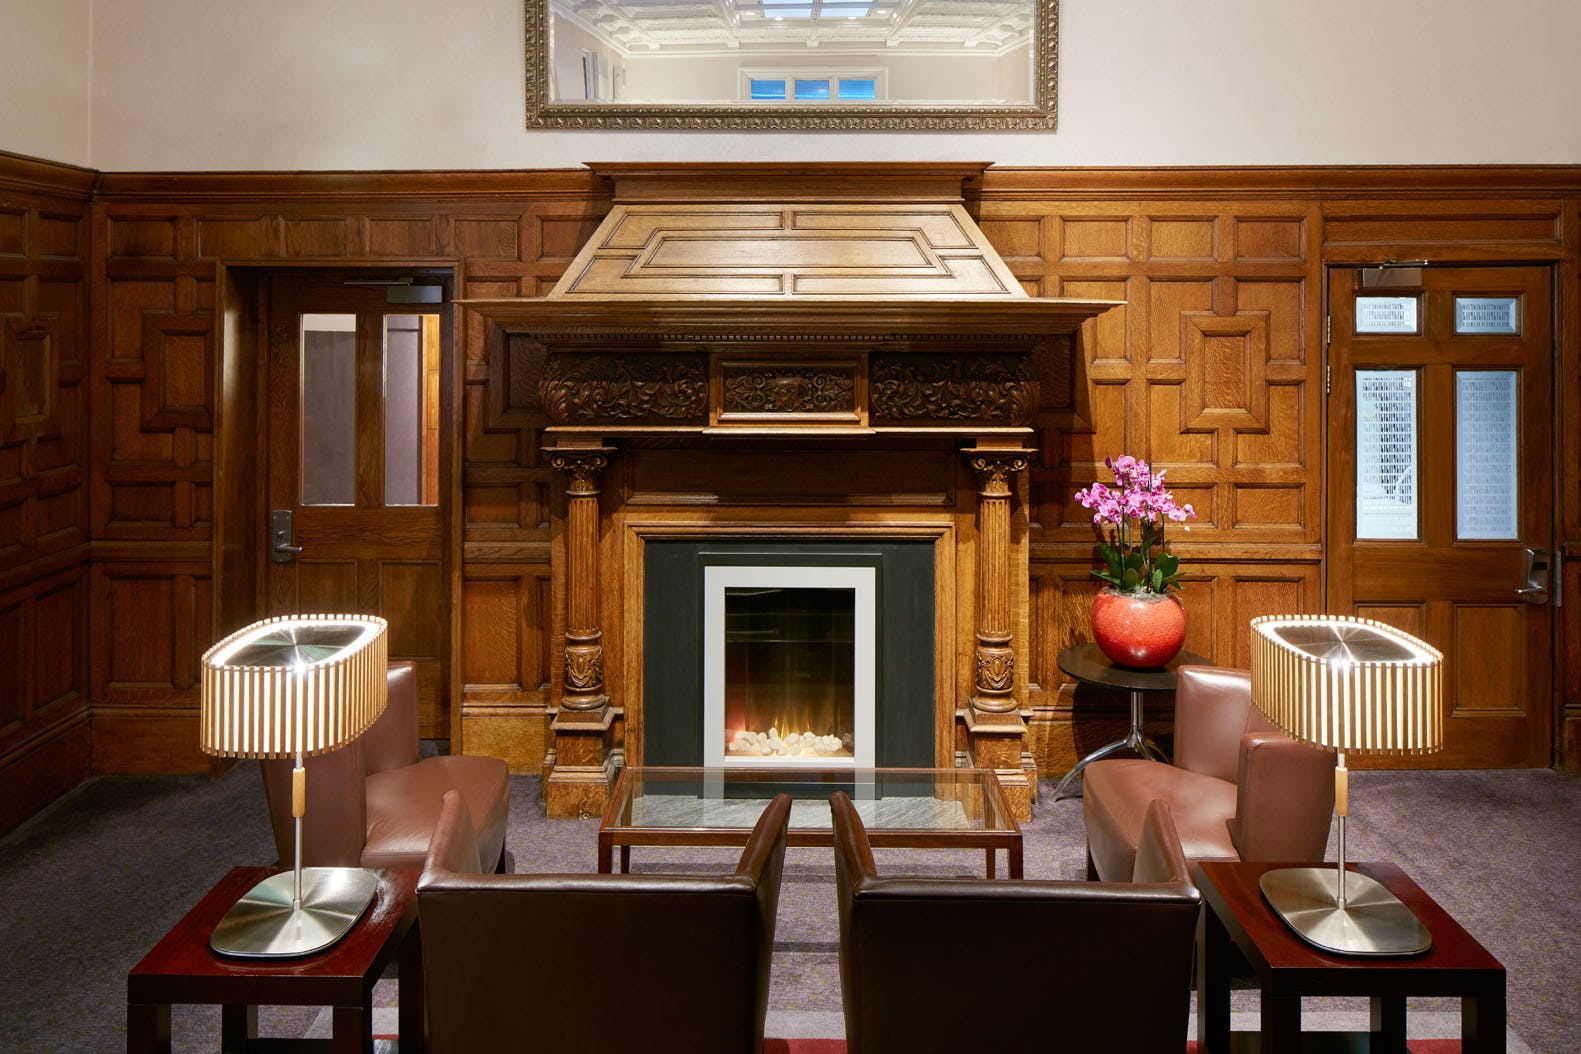 Club Living Room exclusively for members at Club Quarters Hotel, Trafalgar Square, London